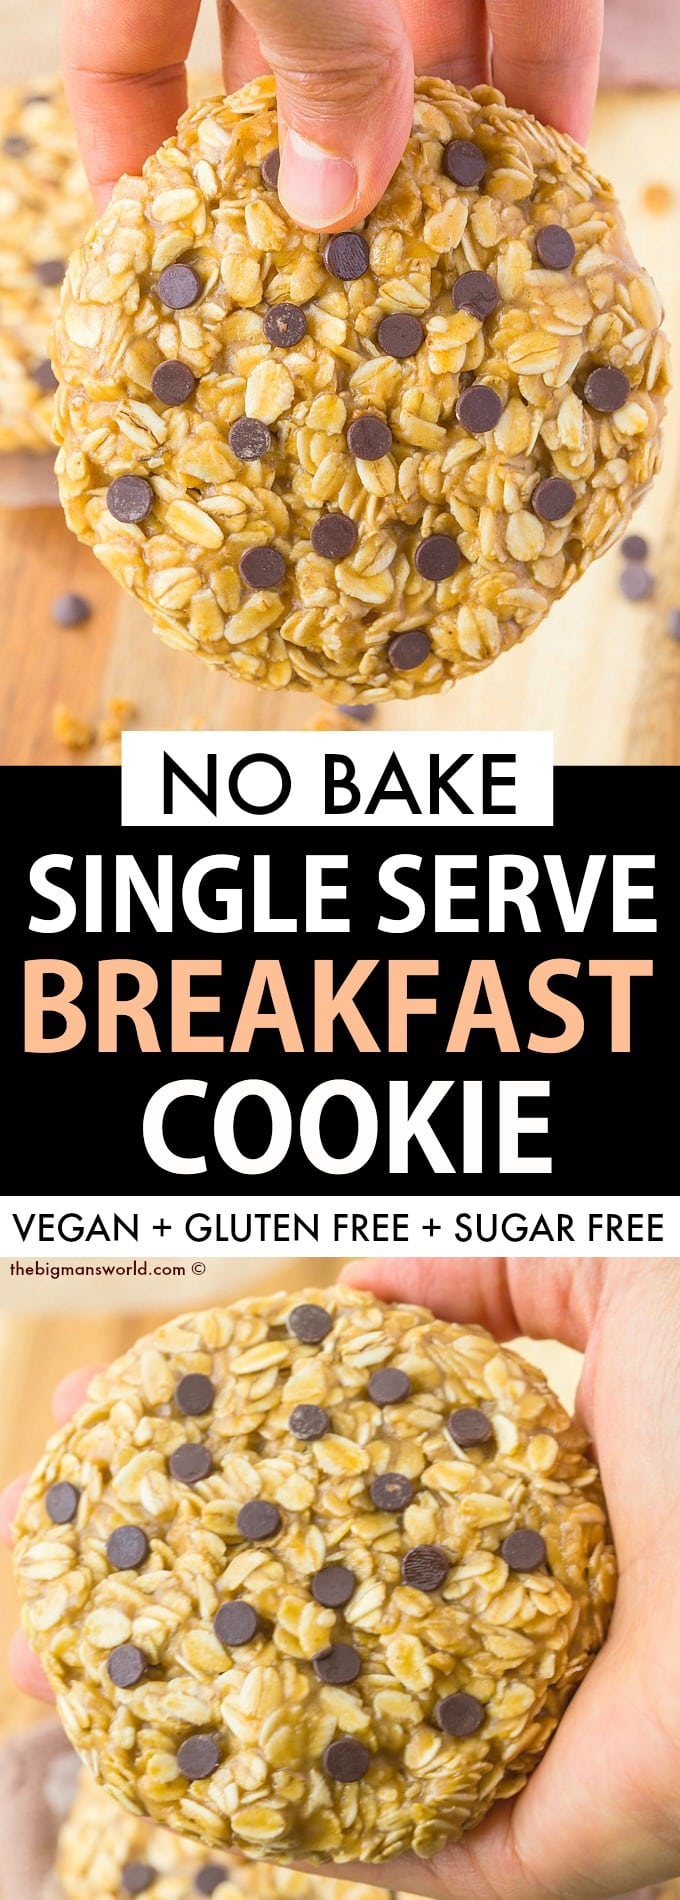 Easy single serving no bake gluten free and vegan breakfast cookie recipe